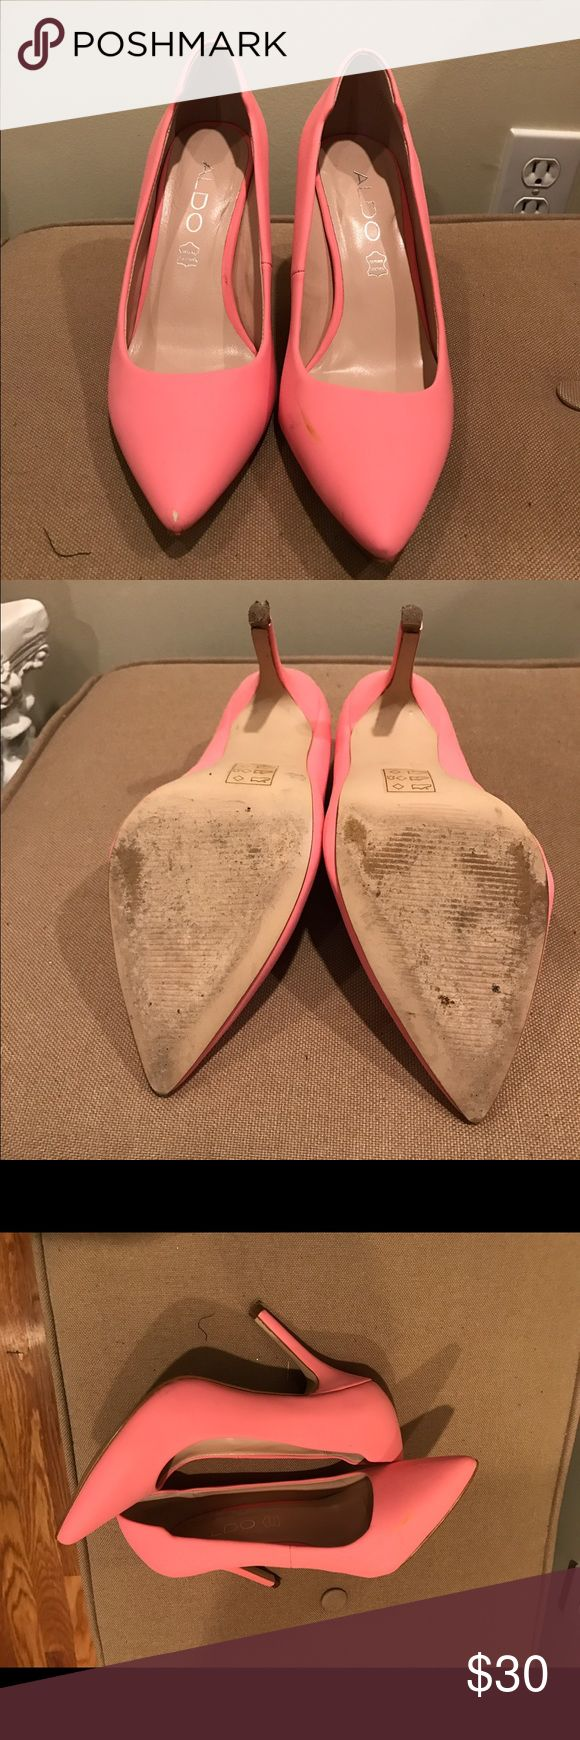 Cotton candy pink heels A mix between cotton candy and bubble gum, these heels are adorable. Worn once to a wedding. Aldo Shoes Heels